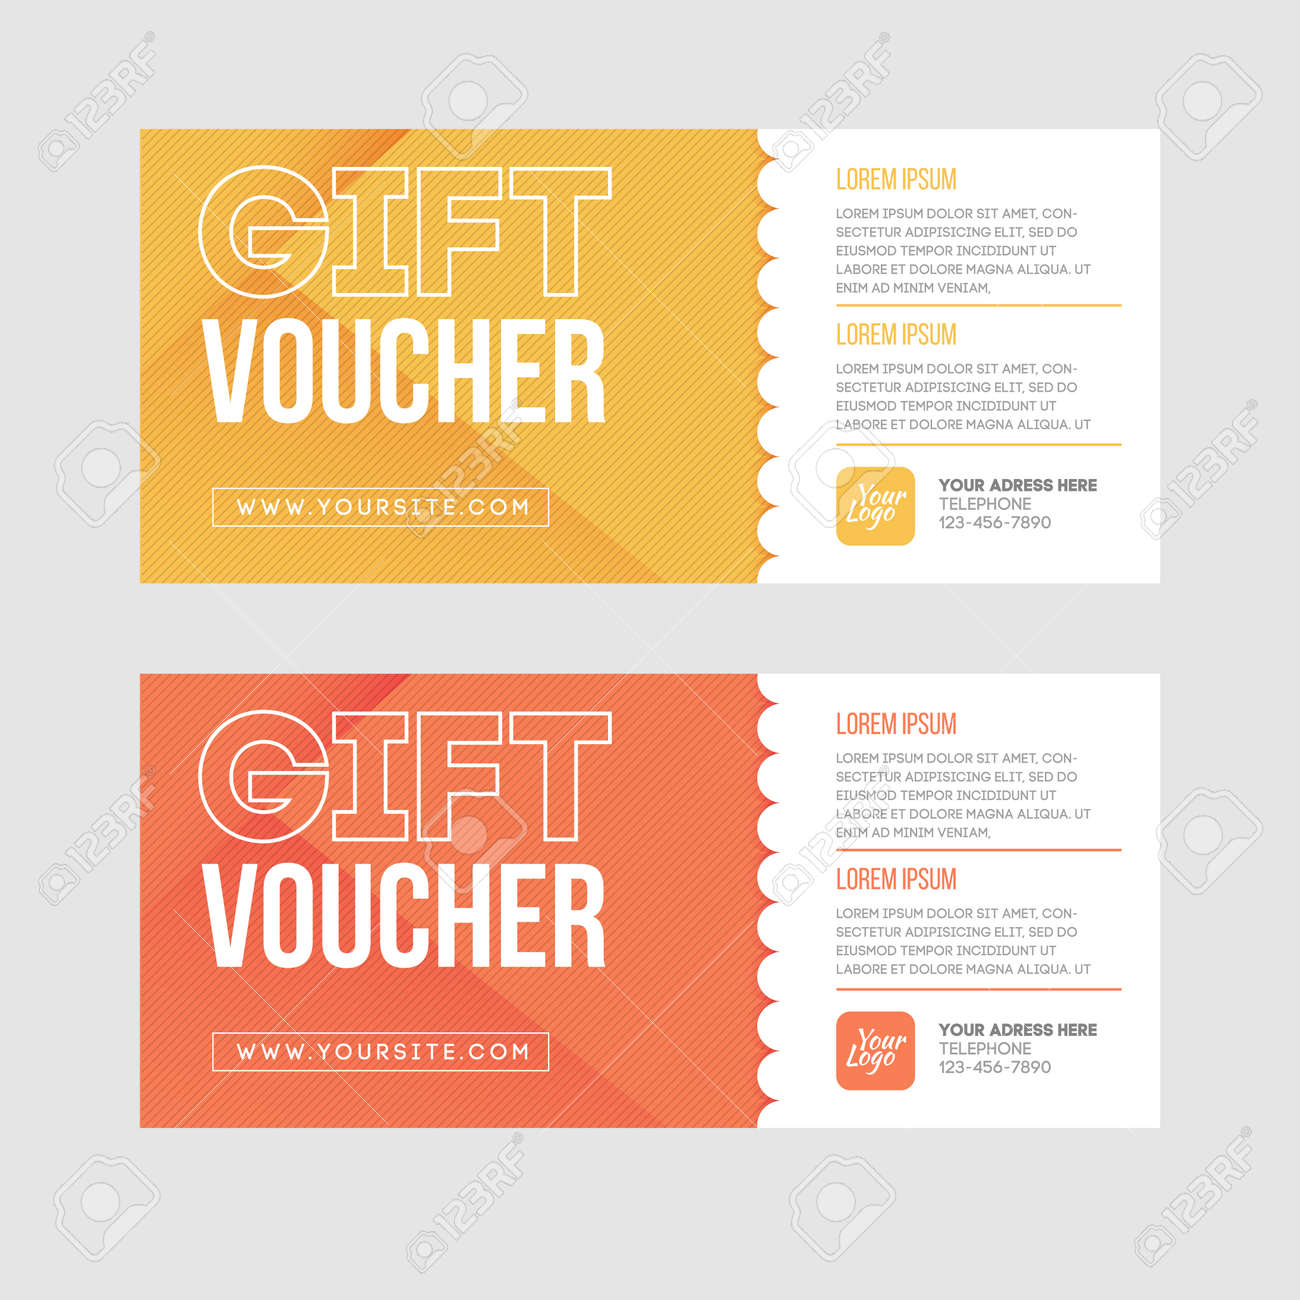 certificate template stock photos images royalty certificate template gift voucher template set two gift cards design